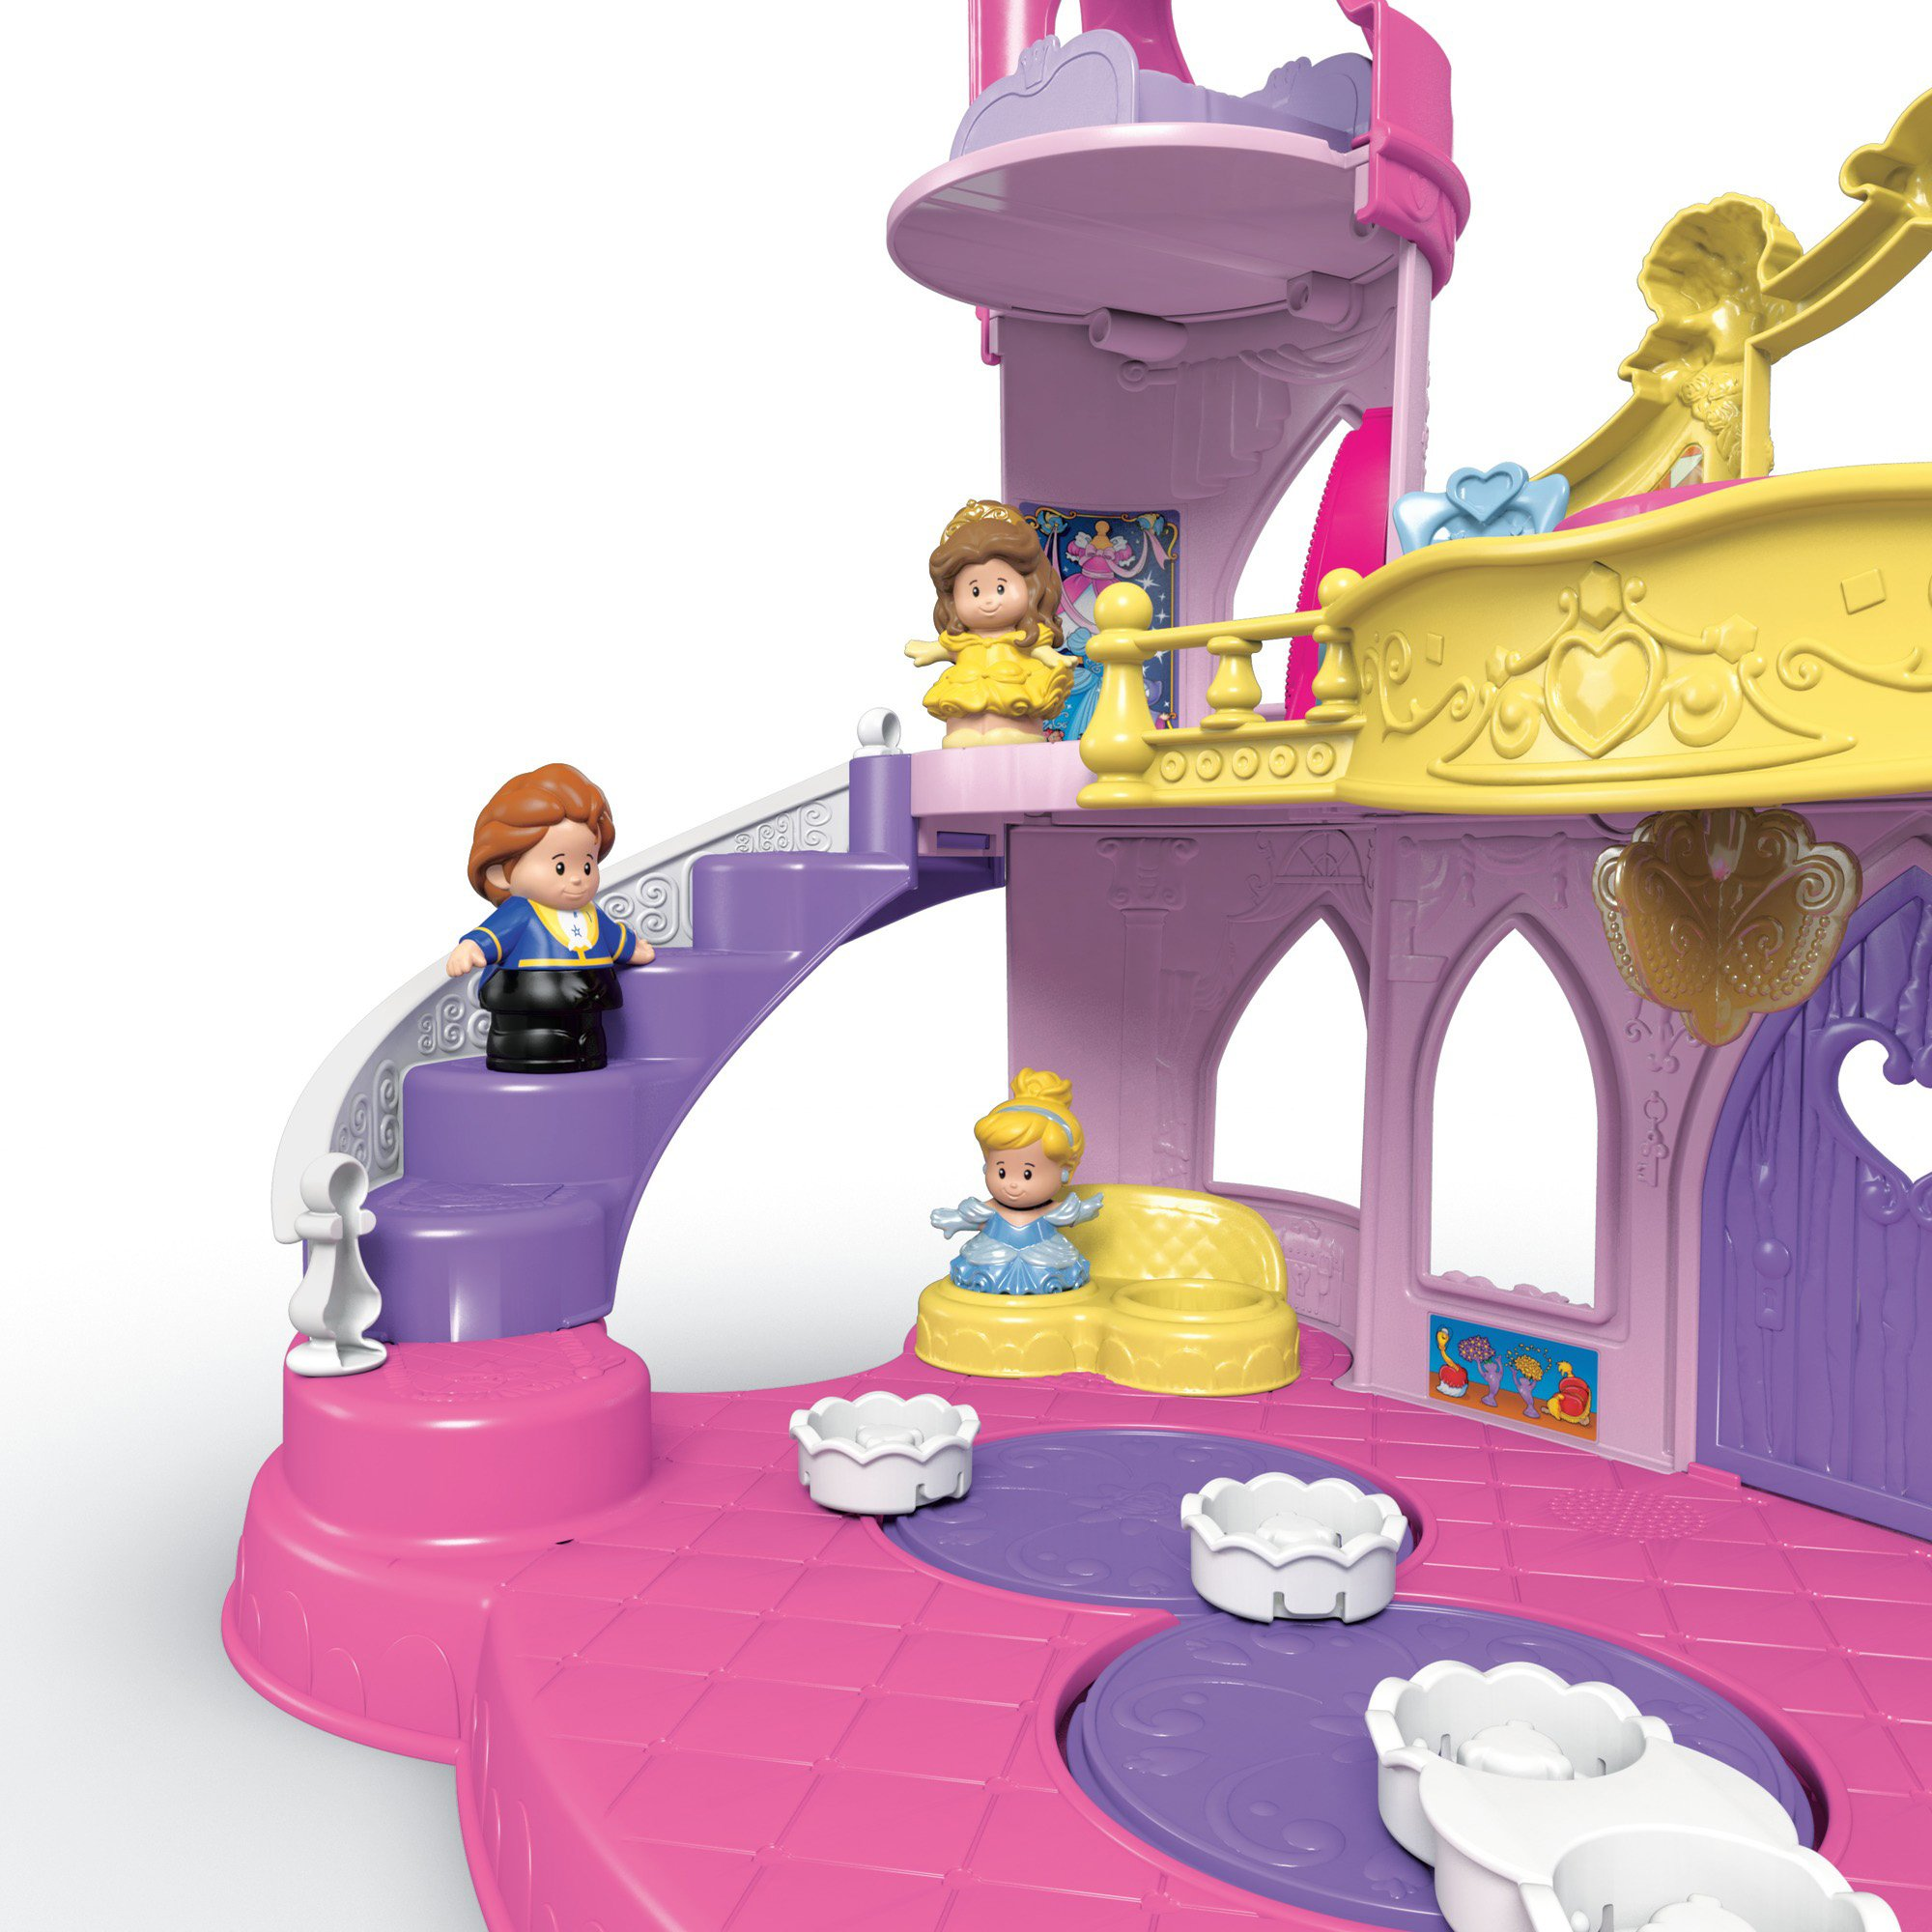 Fisher-Price Little People Disney Princess, Musical Dancing Palace by Fisher-Price (Image #21)